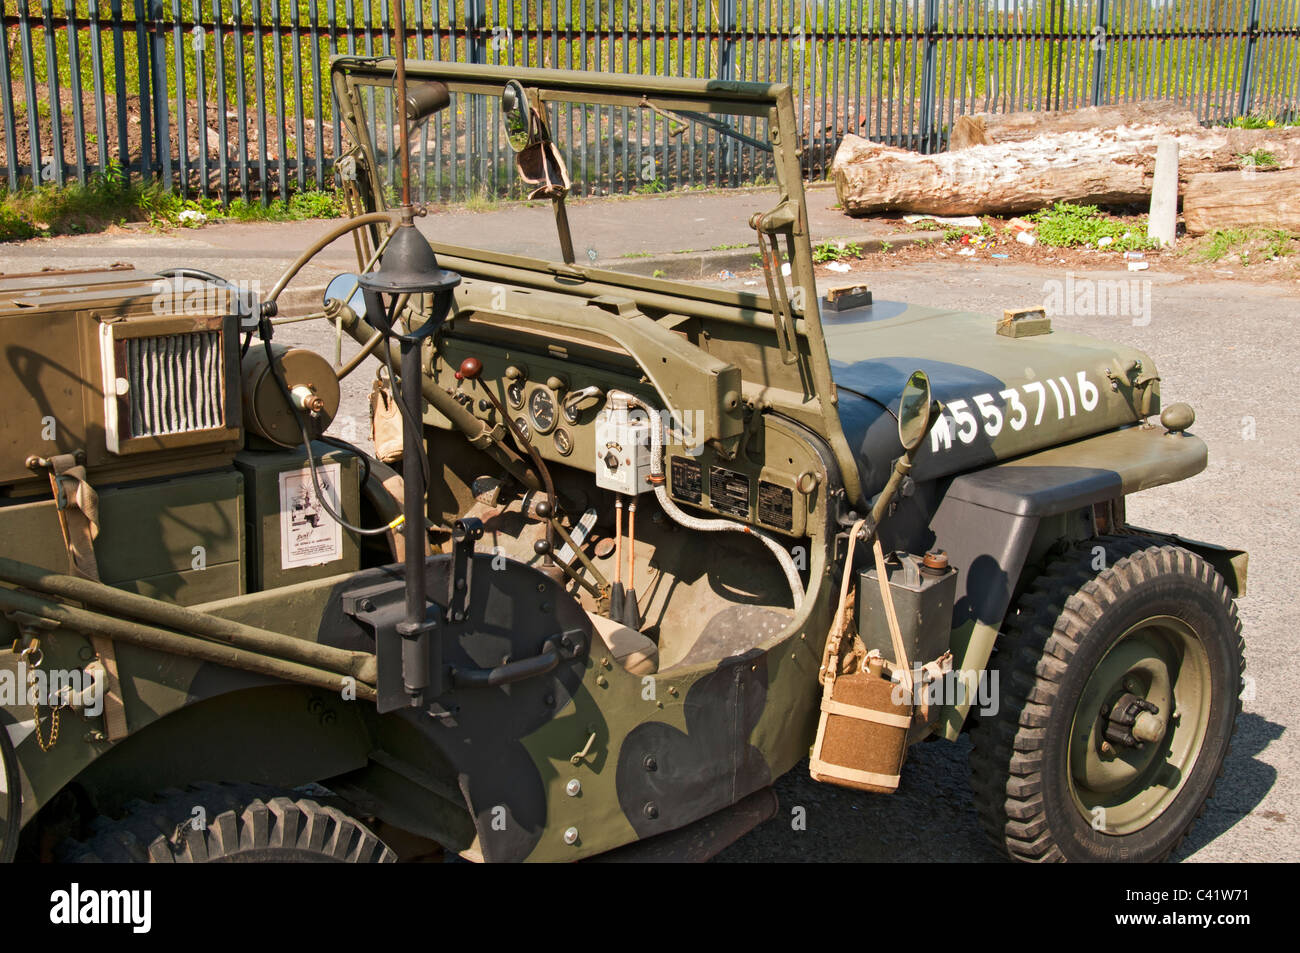 hight resolution of ford willys mb us army jeep c1941 5 at a ww2 parade